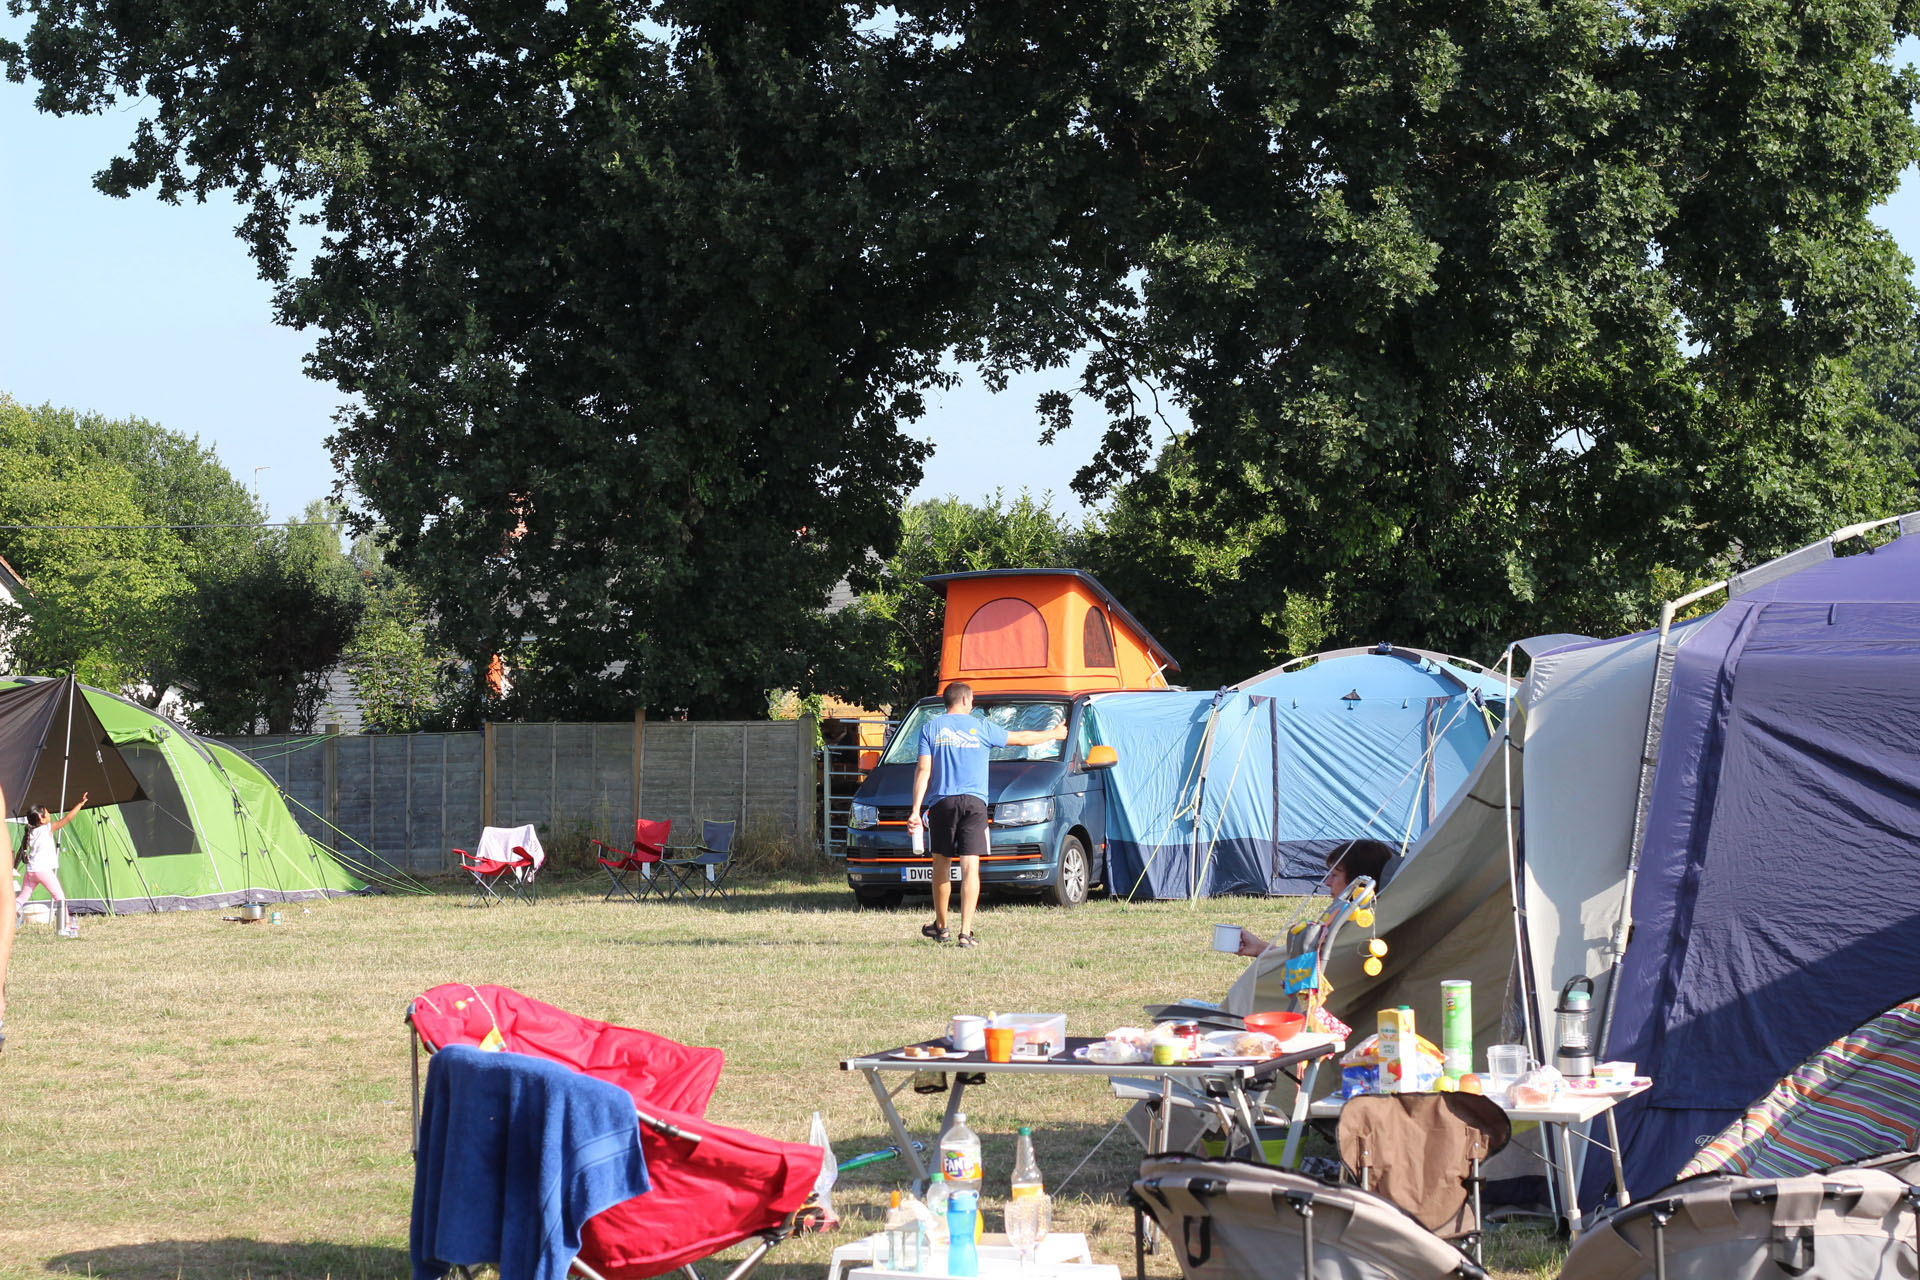 Meadow View campsite